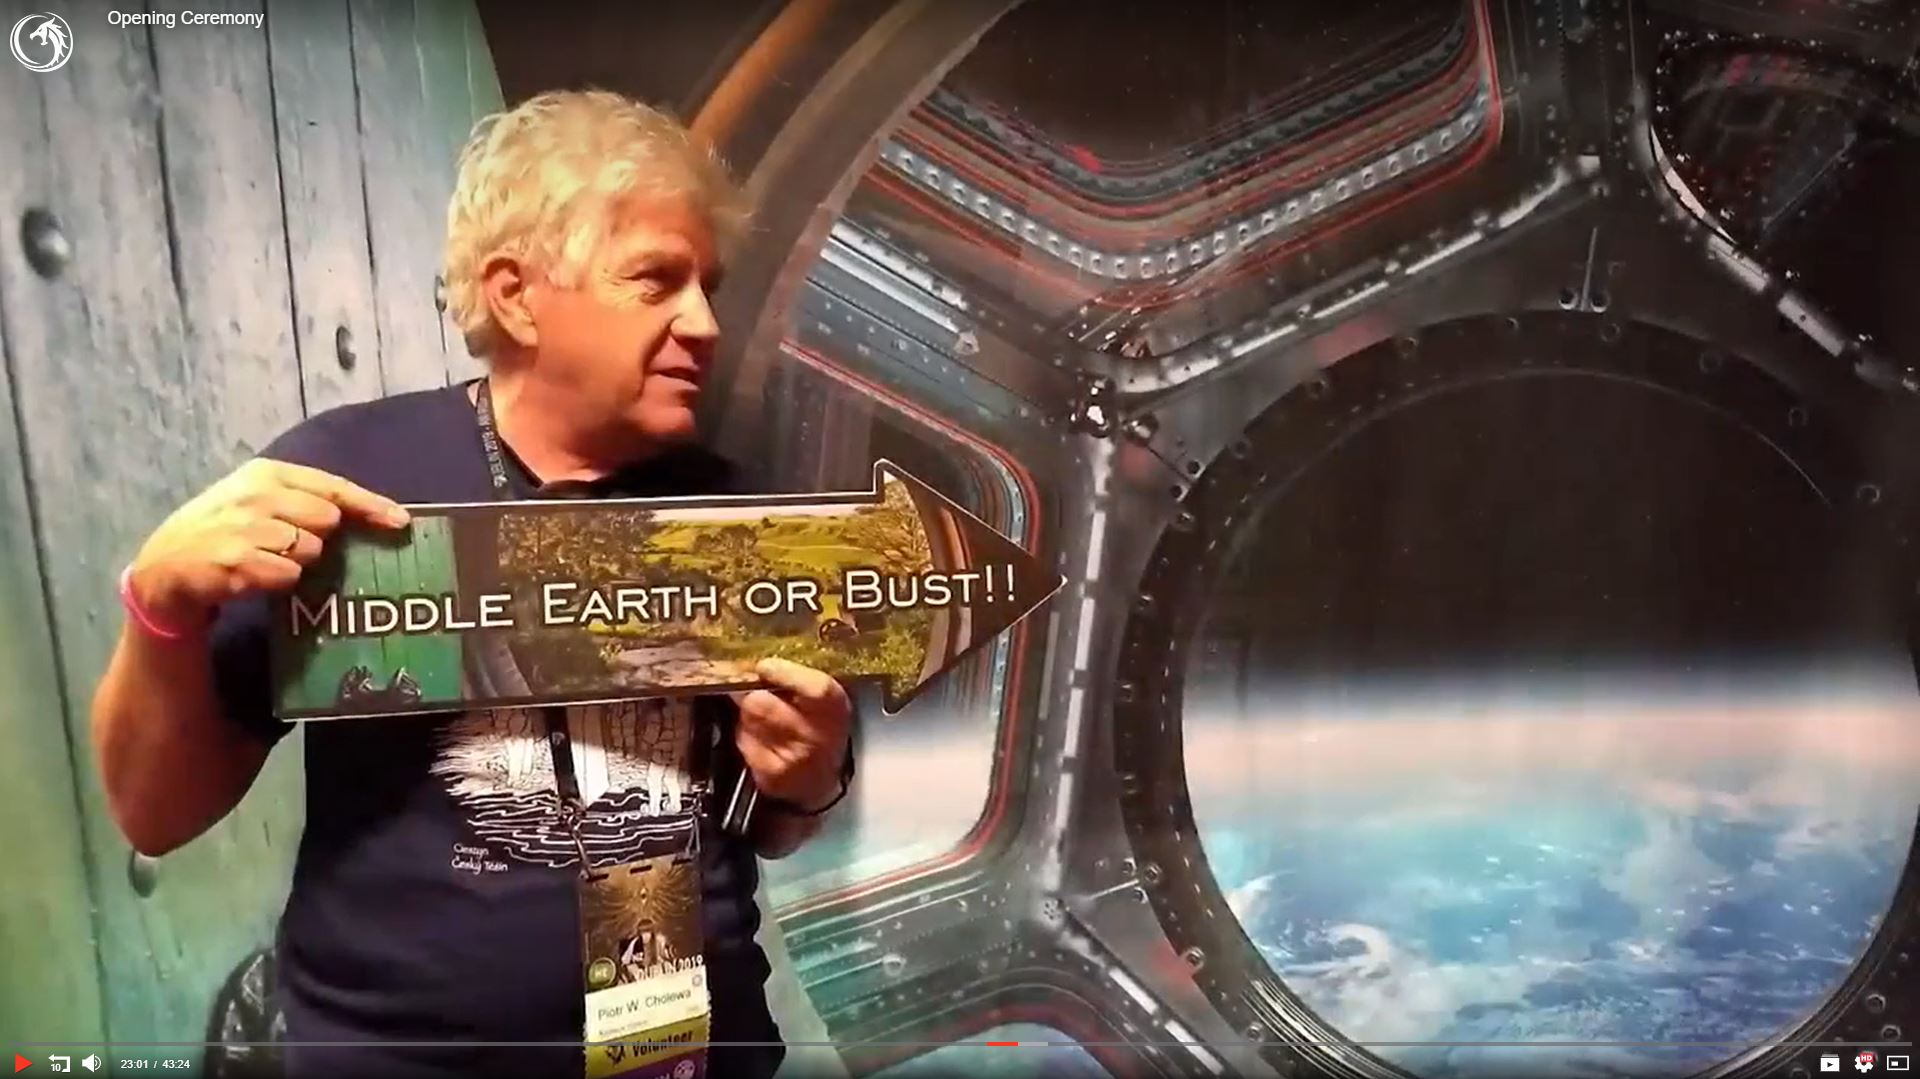 Man posing to the picture with 'Middle Earth or Bust!!' sign. Behind him there is a background with open hobbit door and a view from a spaceship window.